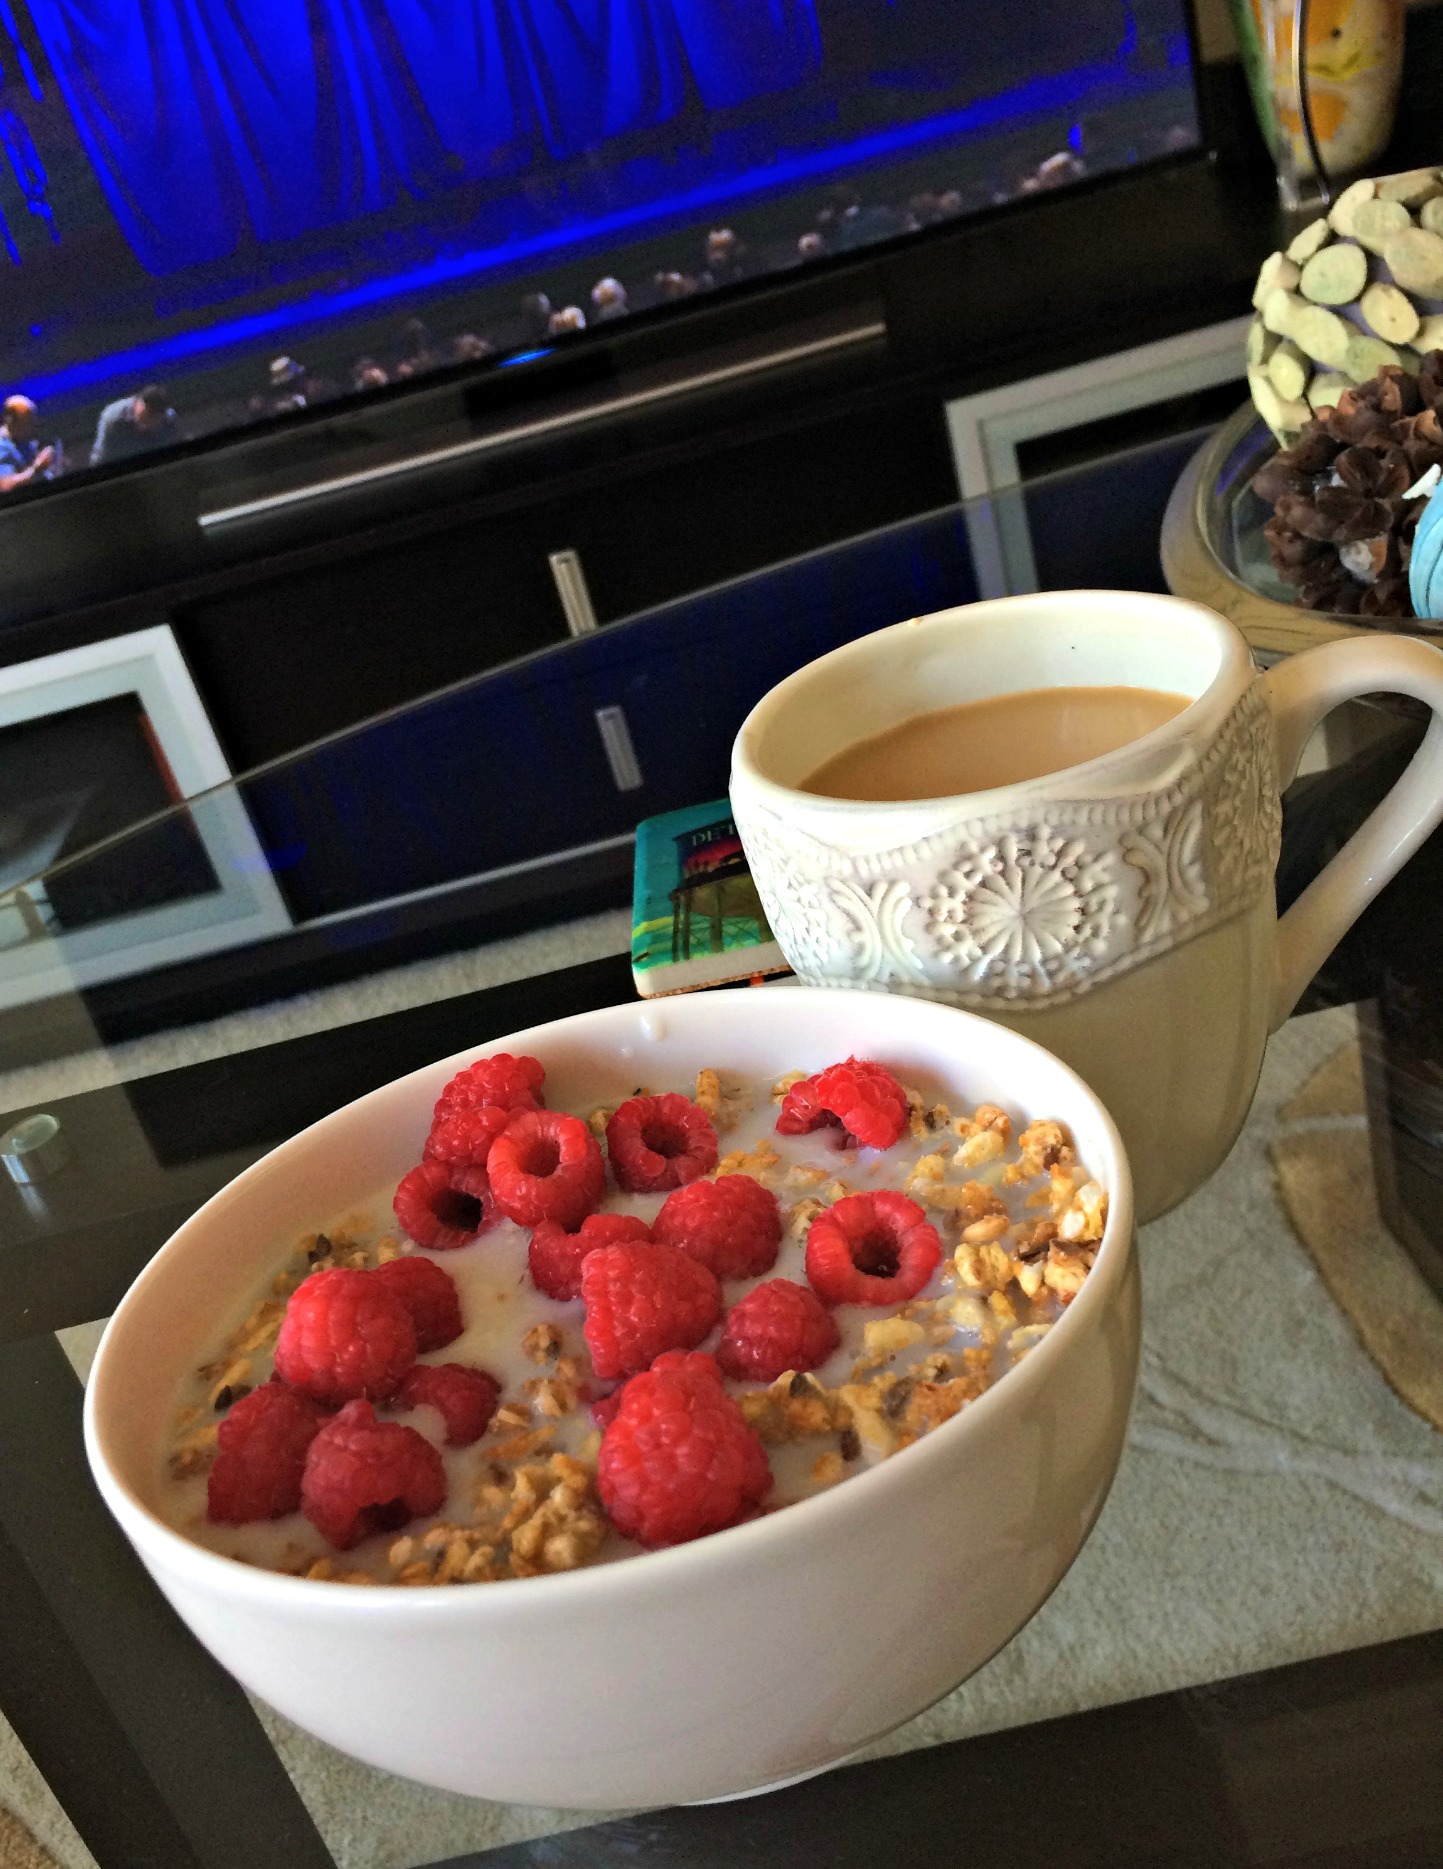 fiber cereal with raspberries and coffee